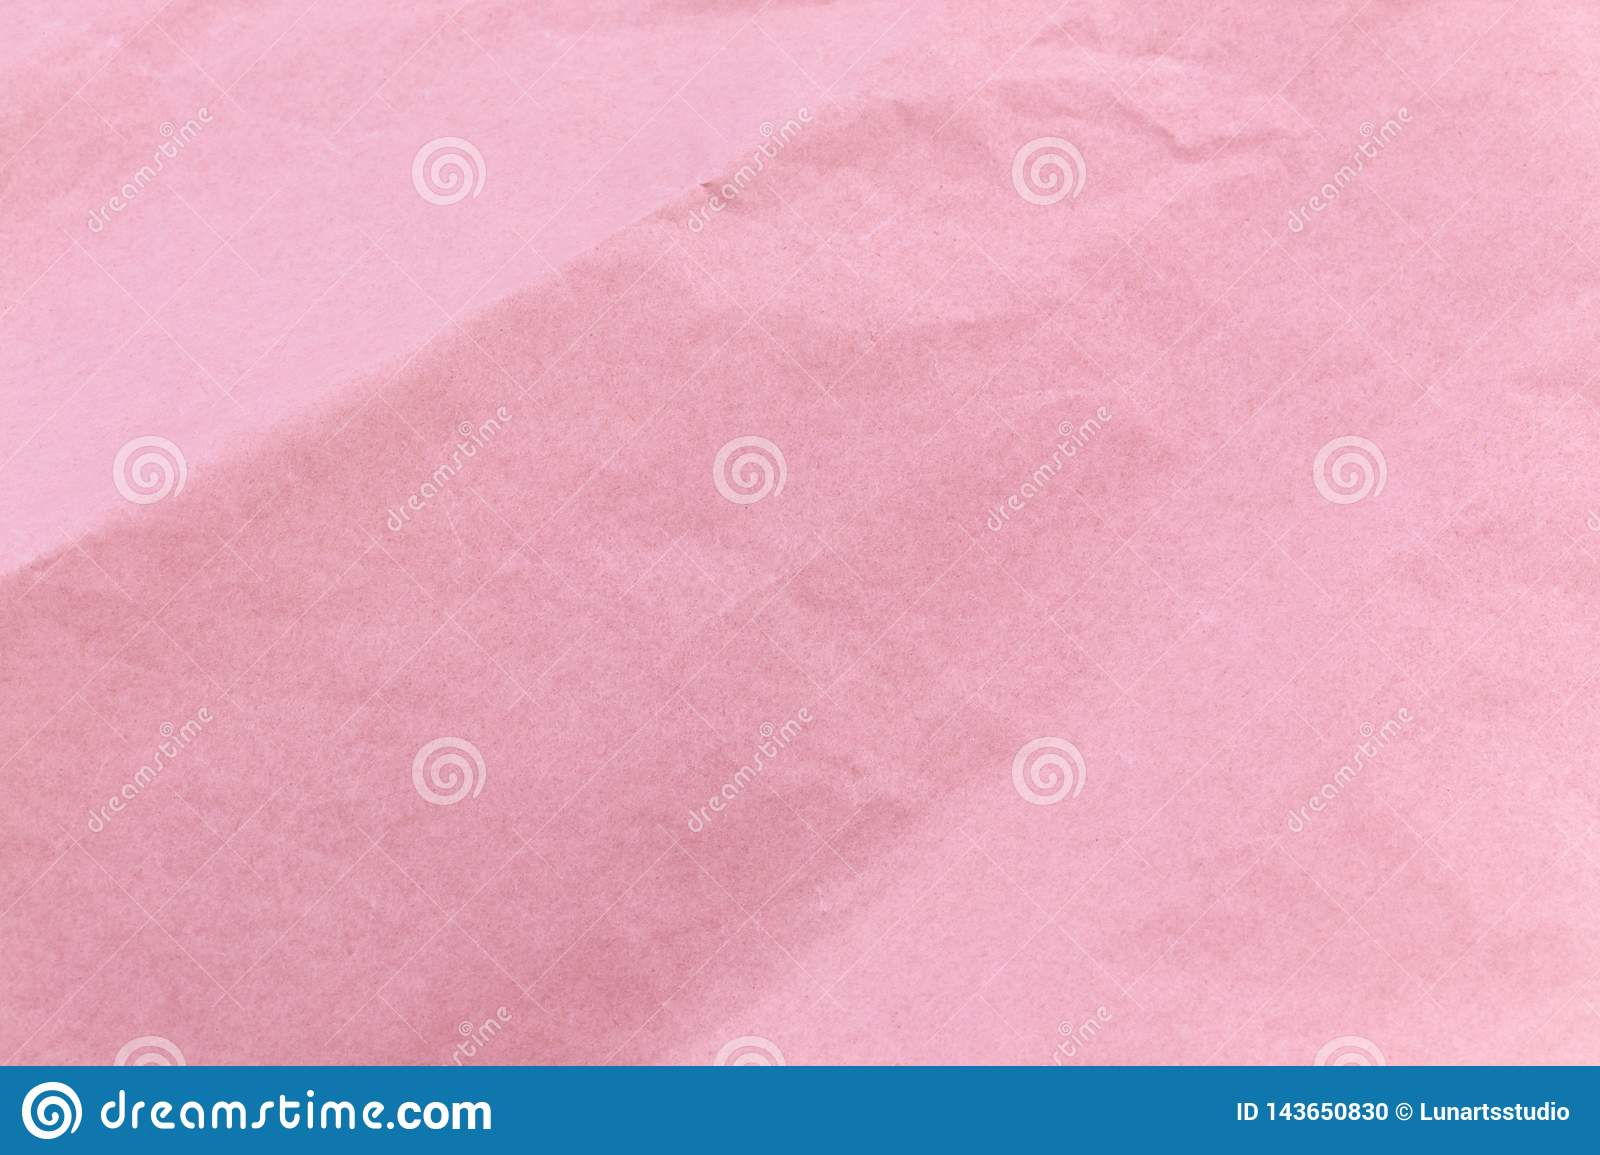 Texture of pink craft crumpled paper background